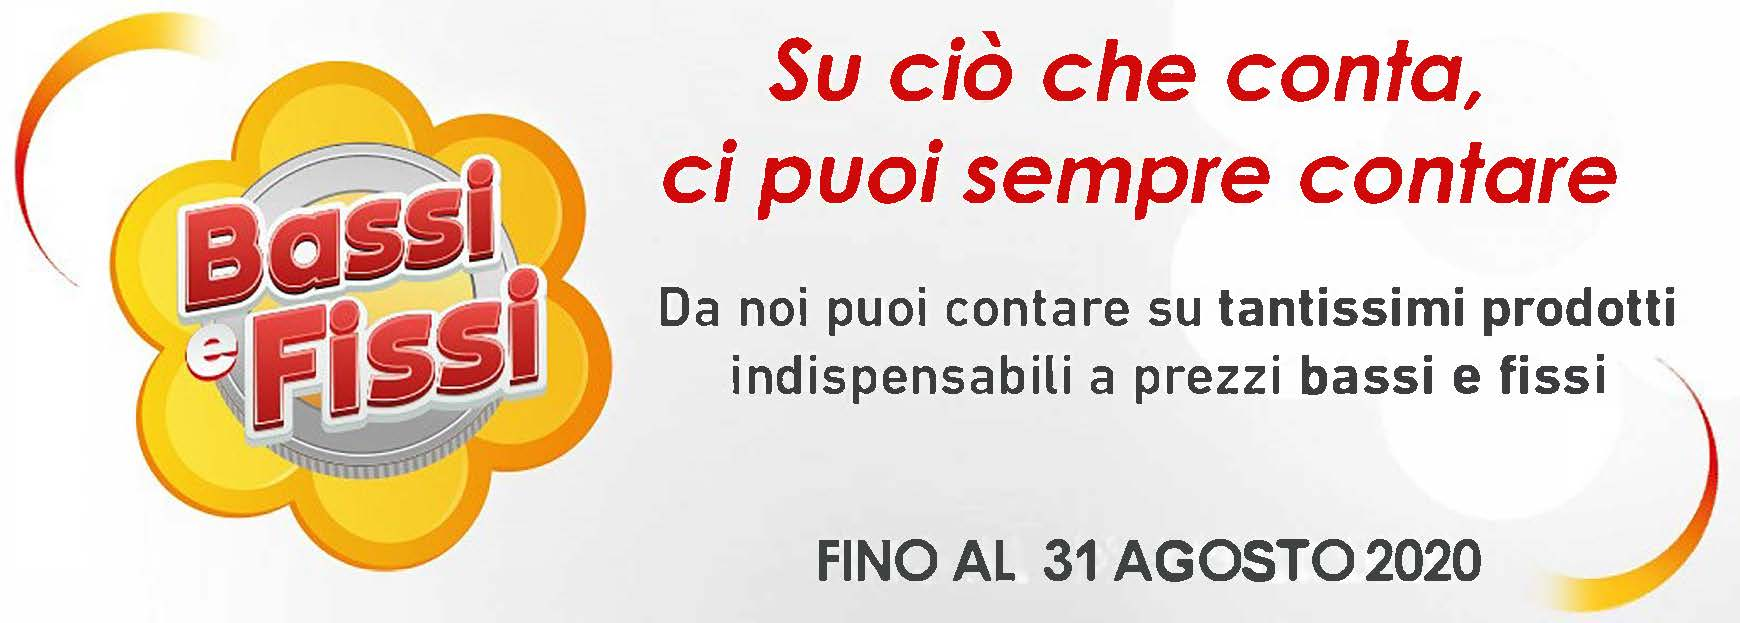 https://www.cospeavillage.it/home-page/bassiefissi-banner-pdv-31-agosto-2020/